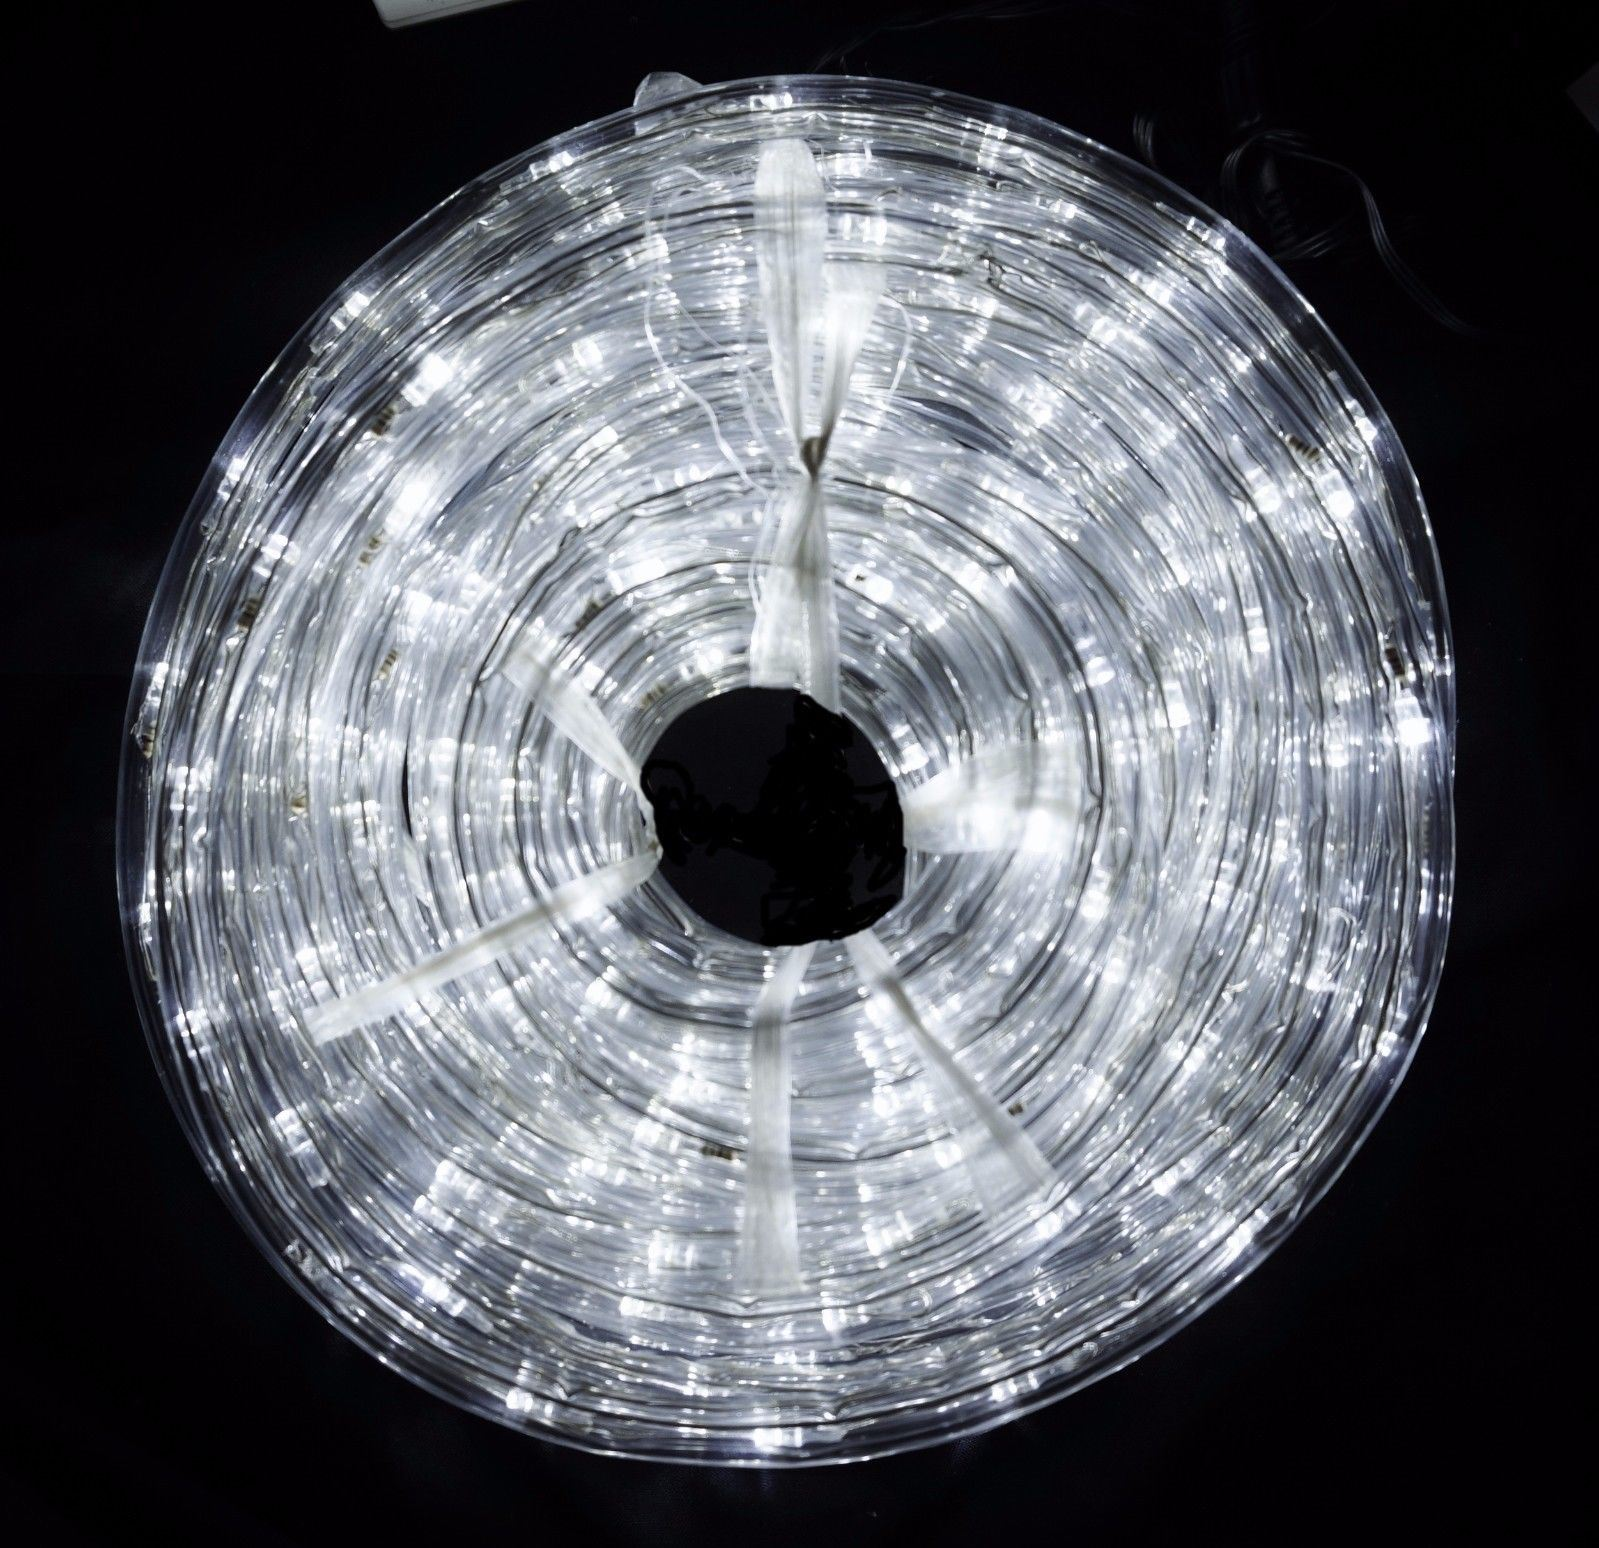 20m led rope light 6 colours low wattage ultra bright memory fast delivery mozeypictures Images